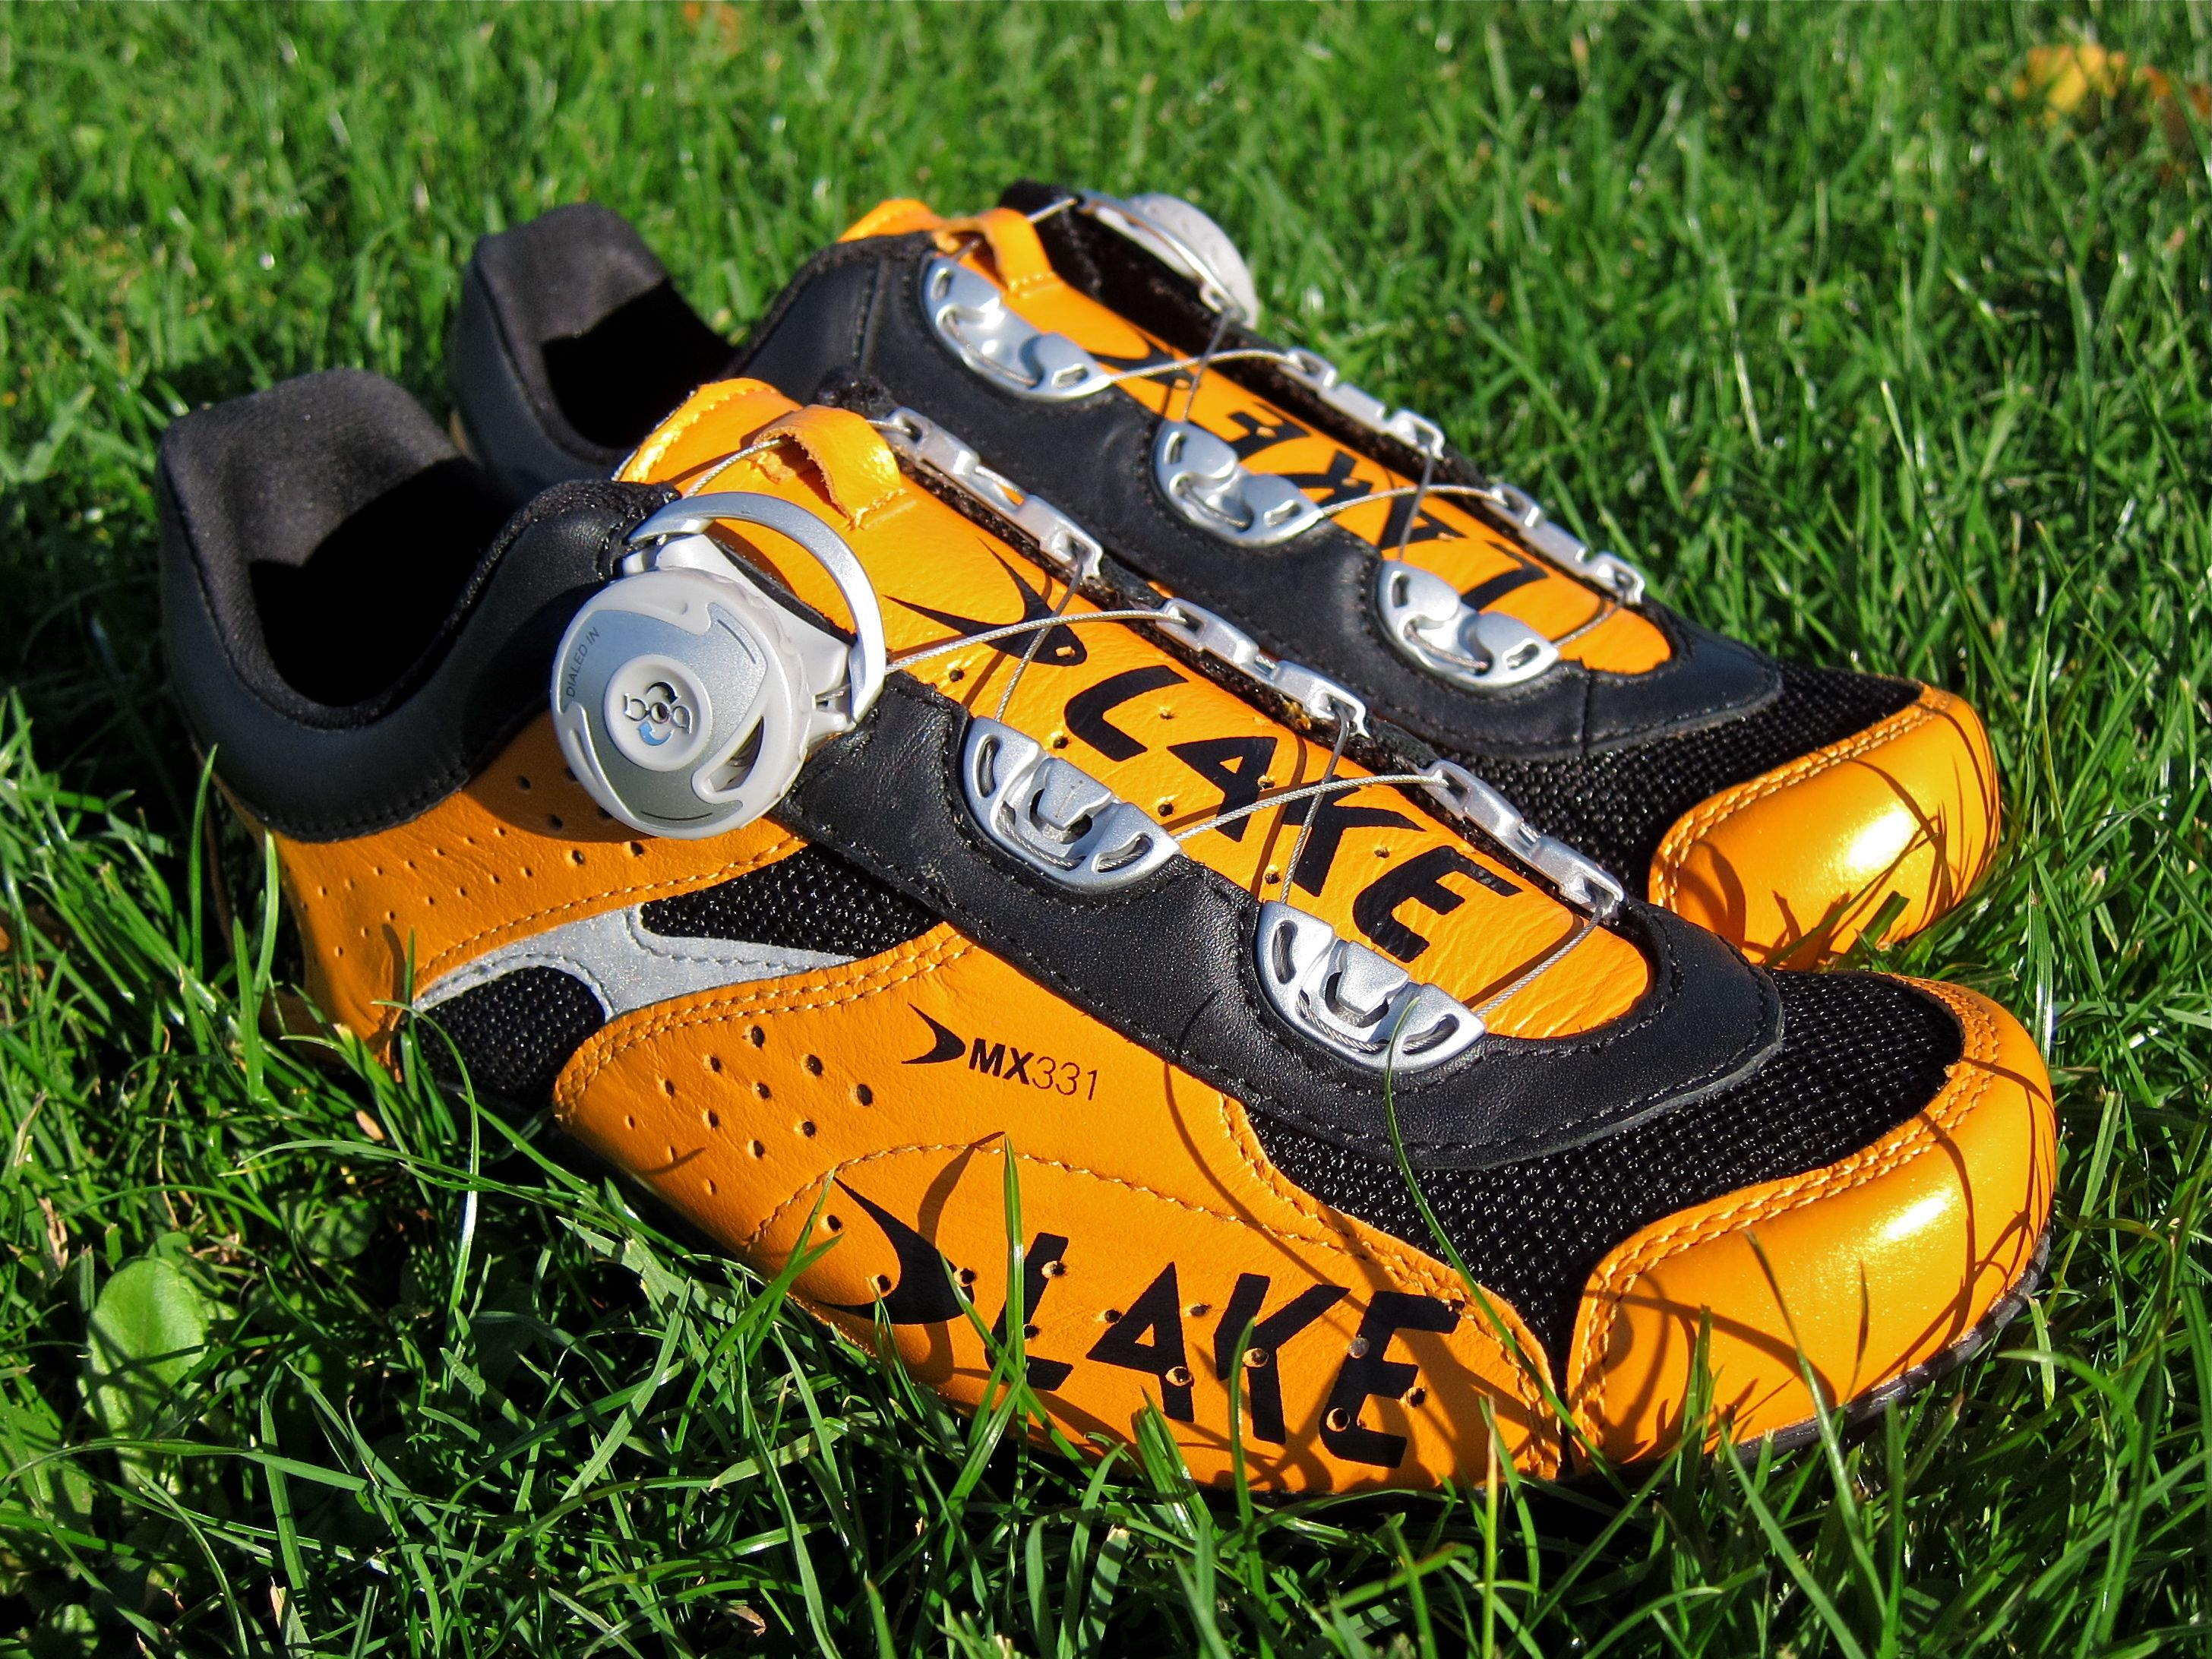 188c76eb9f0b08 Review: Lake MX331CX Cyclo-Cross Shoe | road.cc